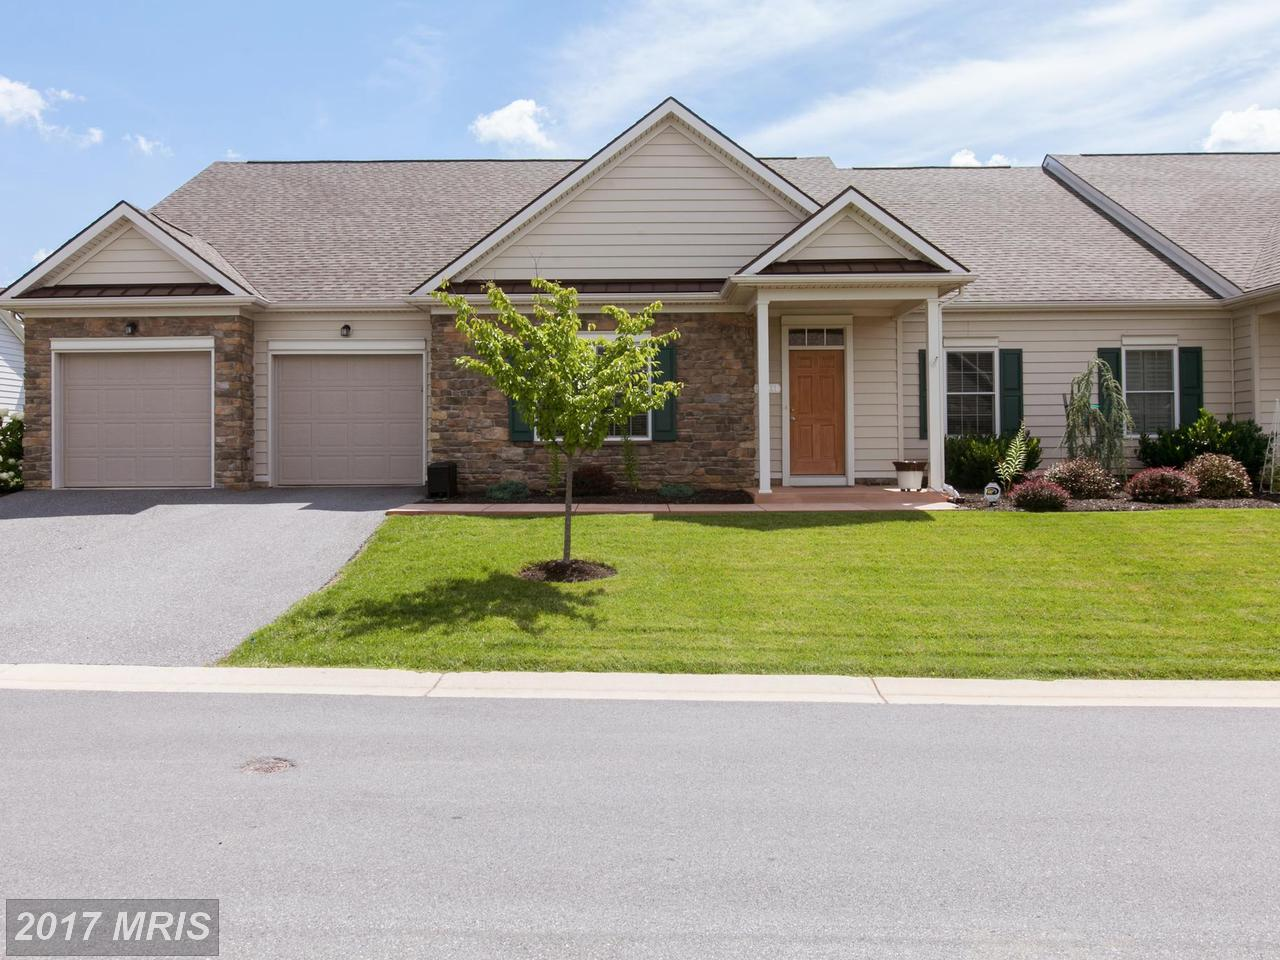 Homes For Sale In The Cortland Villas Subdivision Hagerstown Md Real Estate